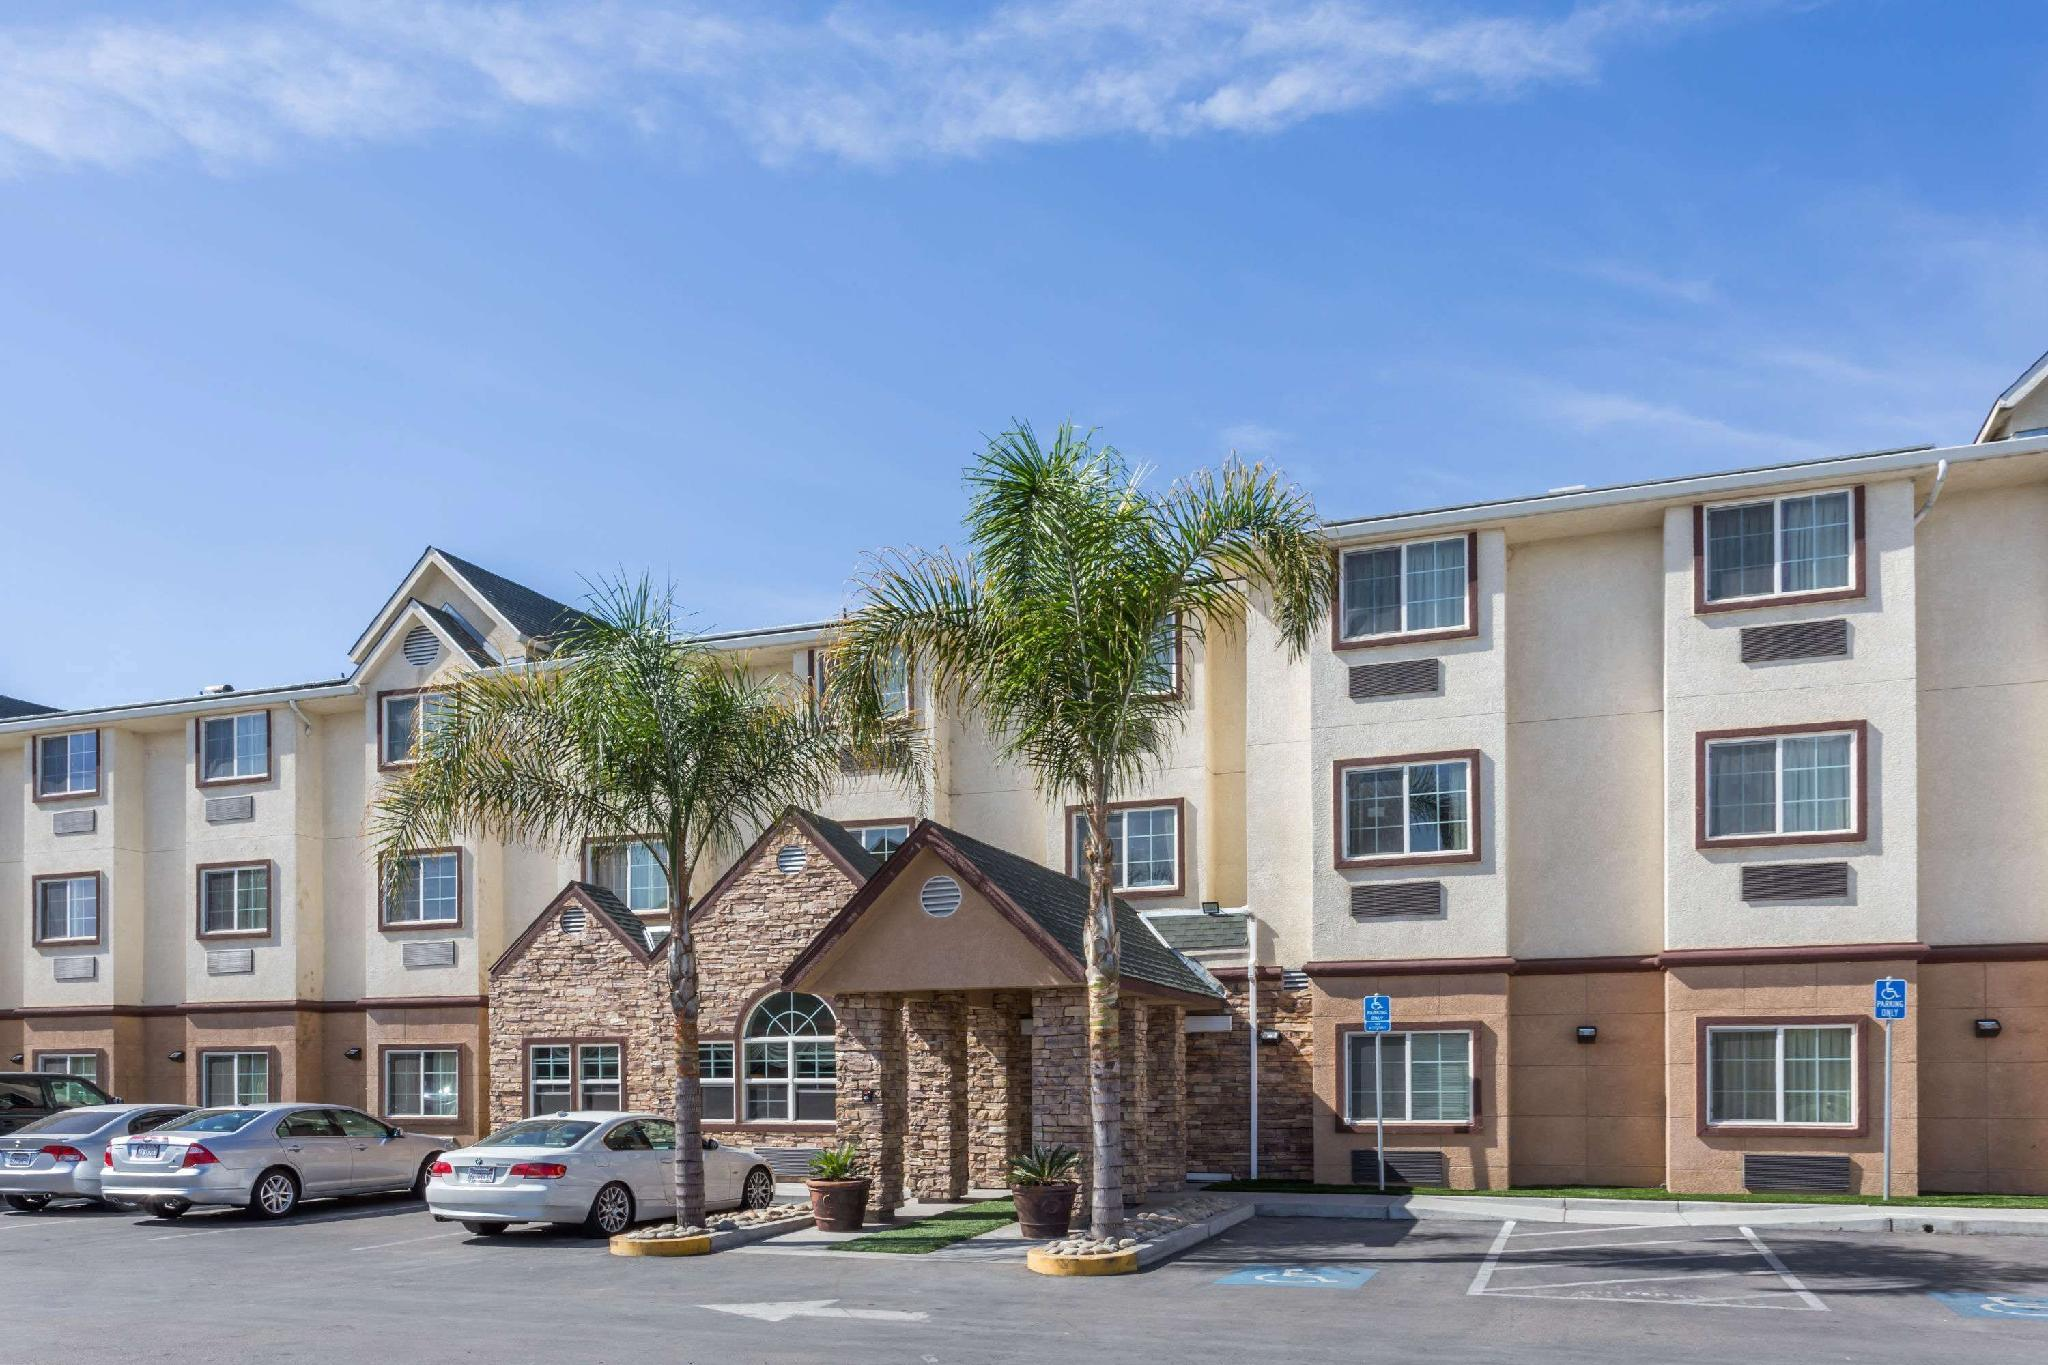 Microtel Inn And Suites By Wyndham Tracy